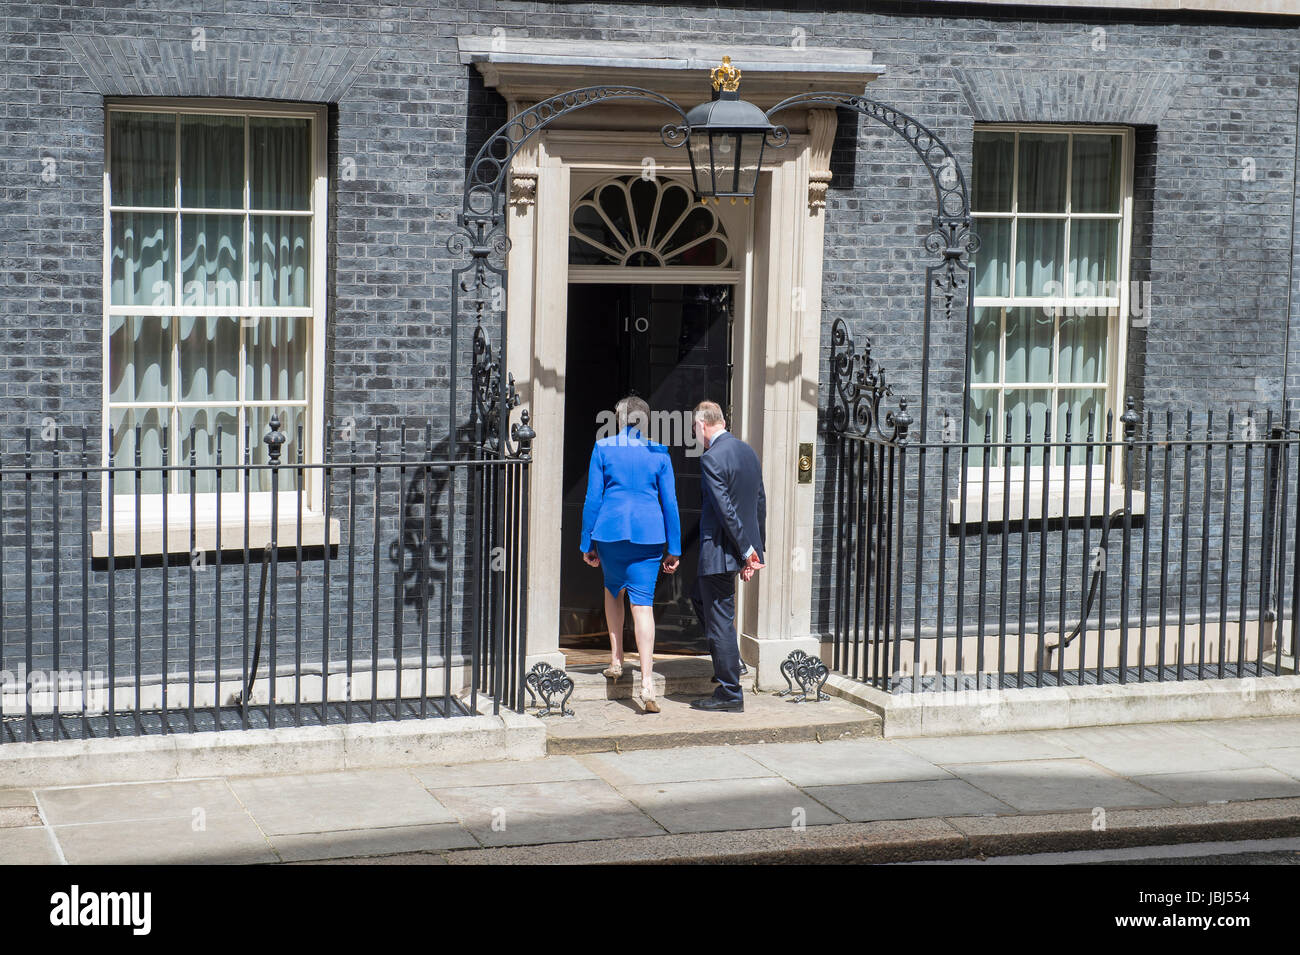 Downing Street, London, UK. 9th June, 2017. PM Theresa May announces formation of a government with the help of - Stock Image